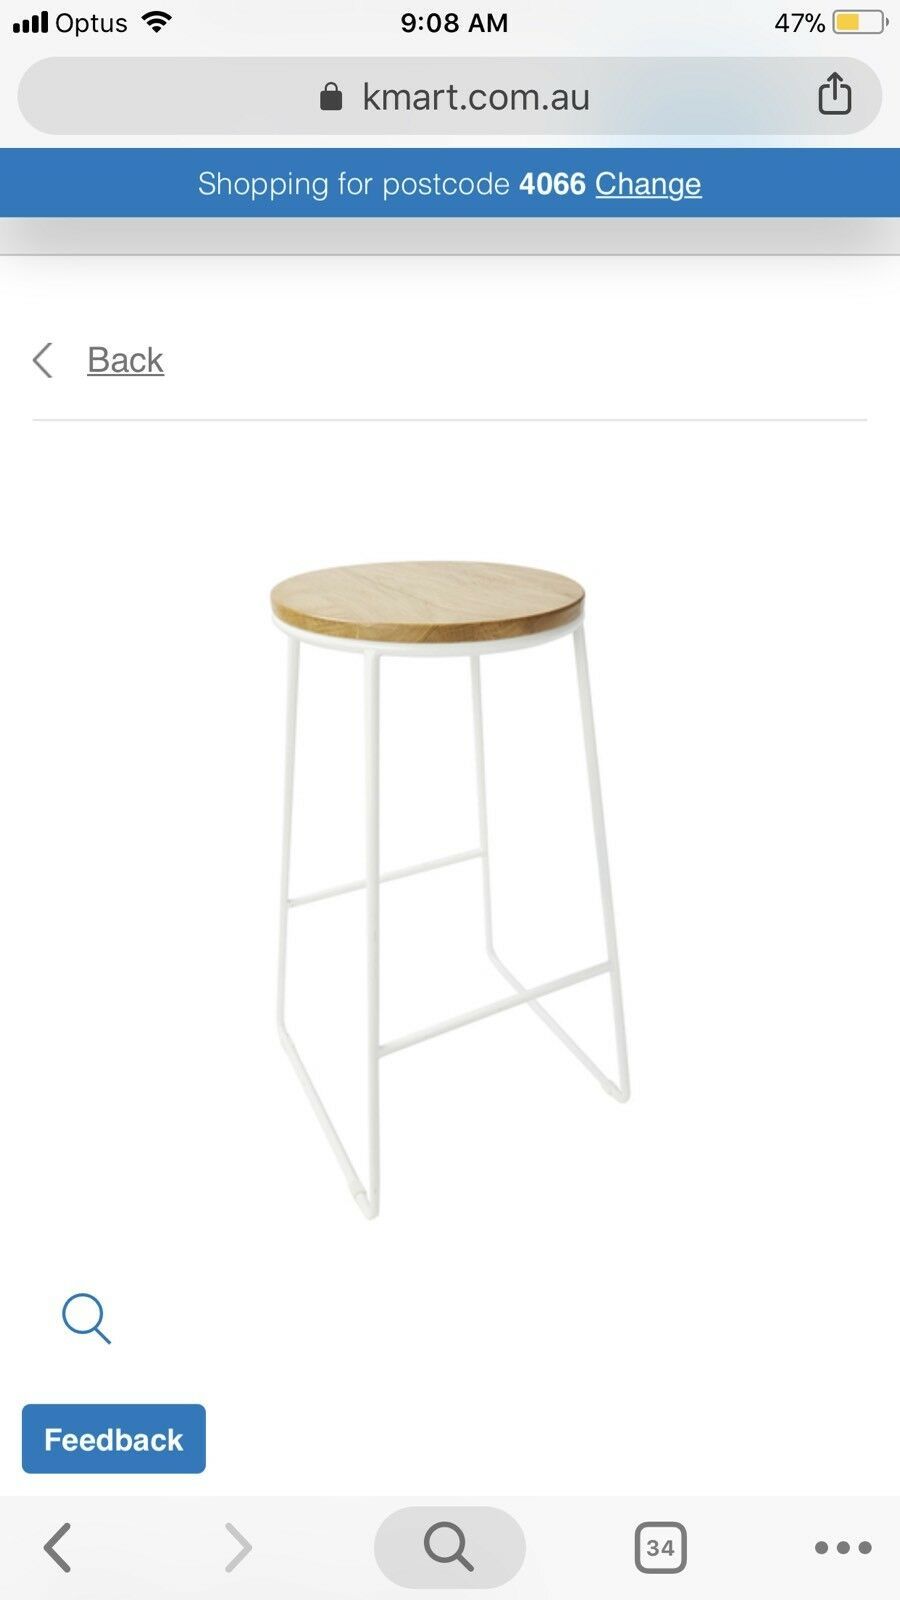 Bar stool dining chairs gumtree australia brisbane north west brisbane city 1204306632